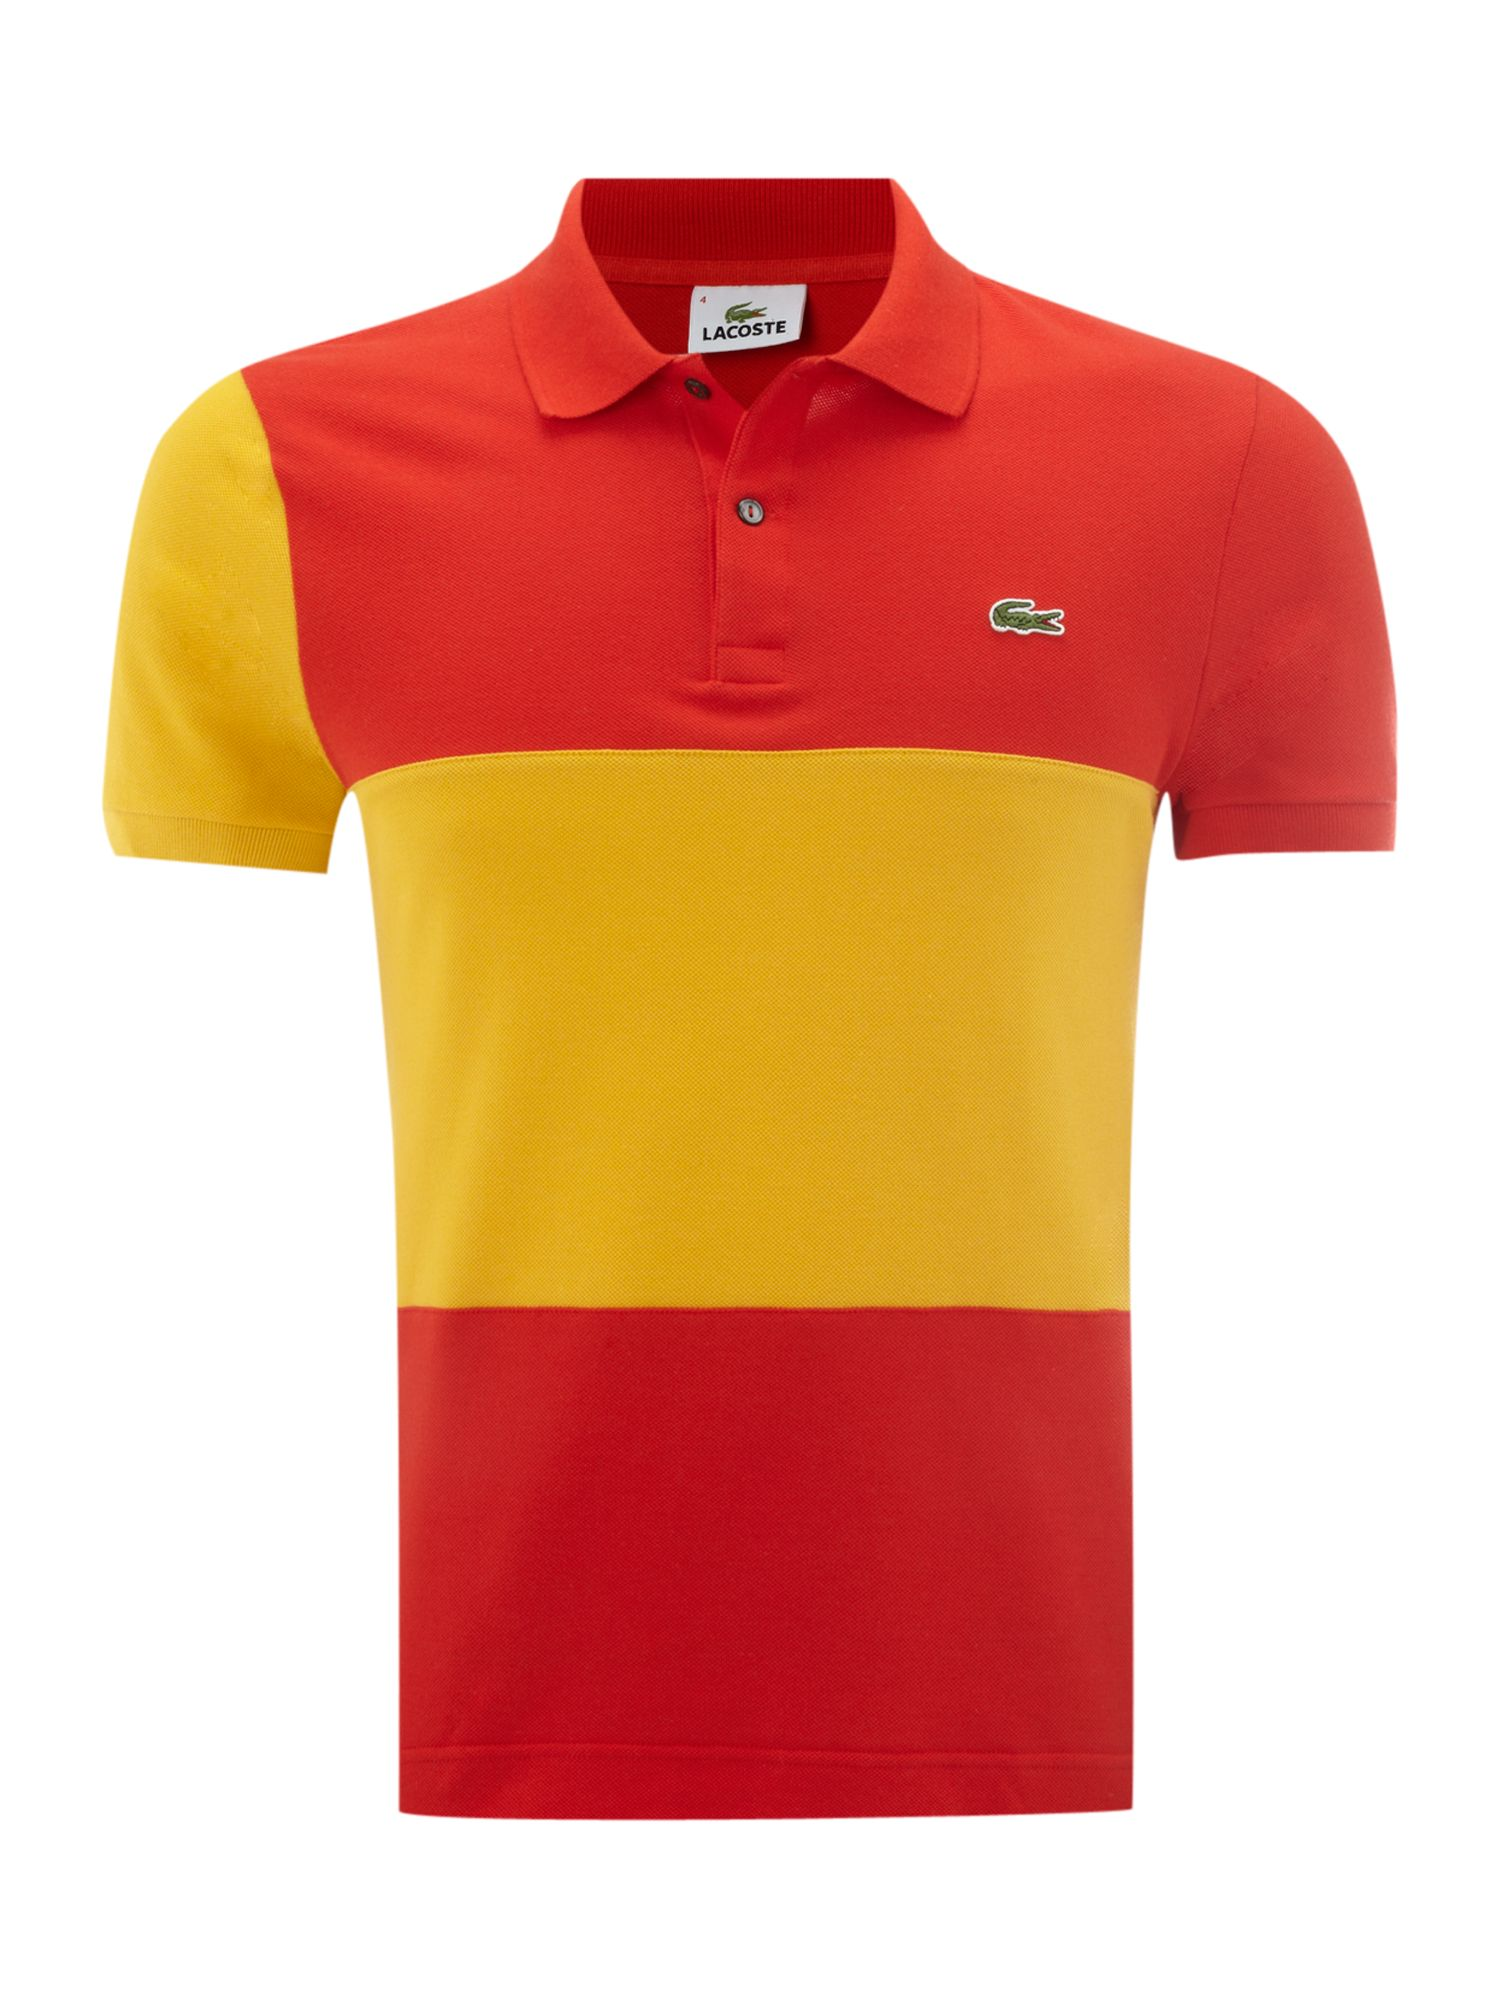 lacoste slim fit spain flag polo shirt in red for men lyst. Black Bedroom Furniture Sets. Home Design Ideas